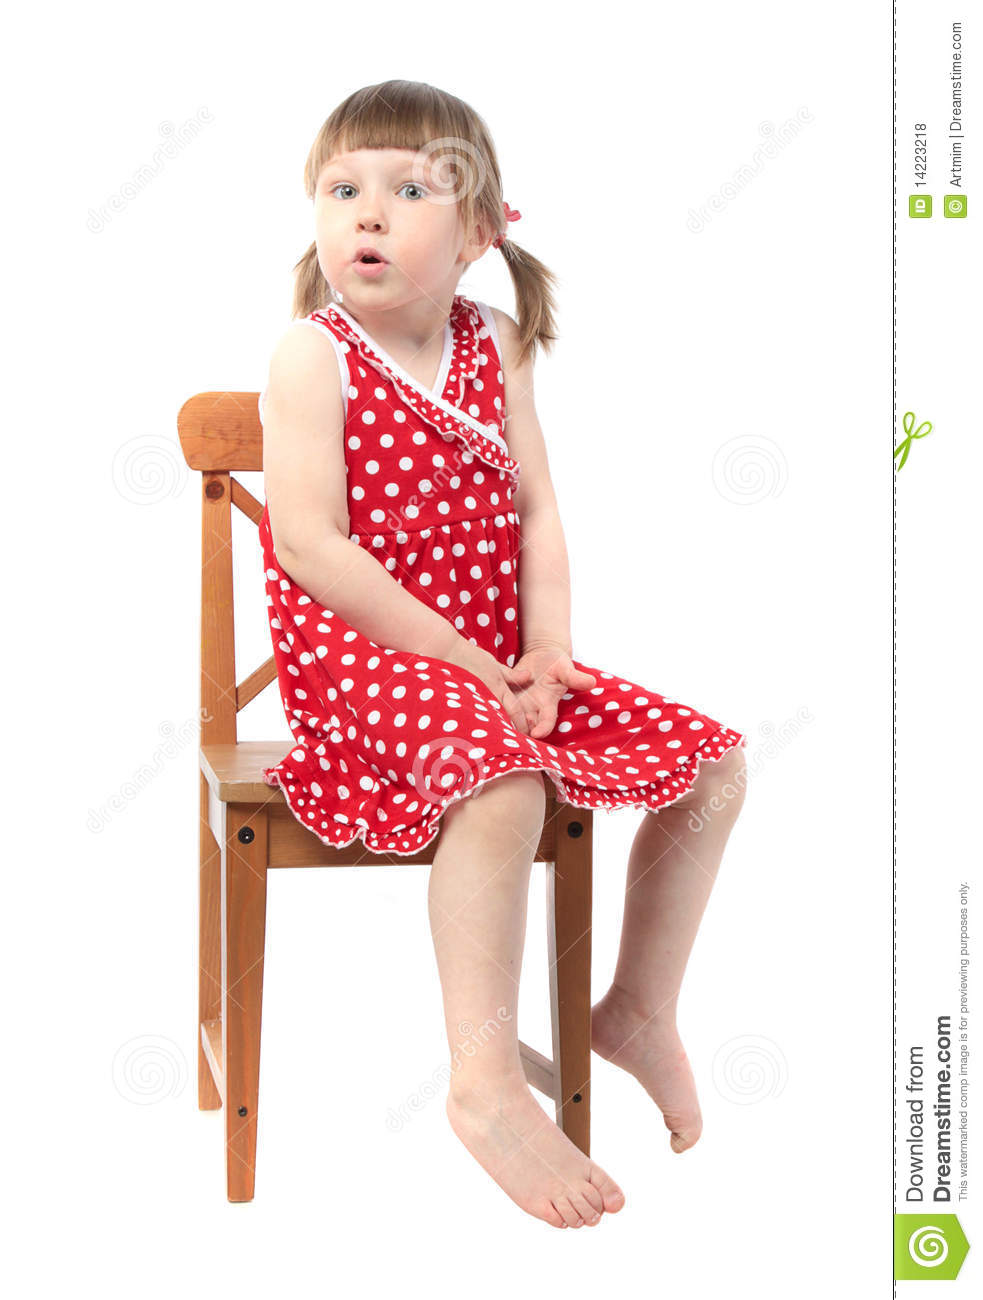 Amazed child sitting on a chair royalty free stock photos for Toddler sitting chair